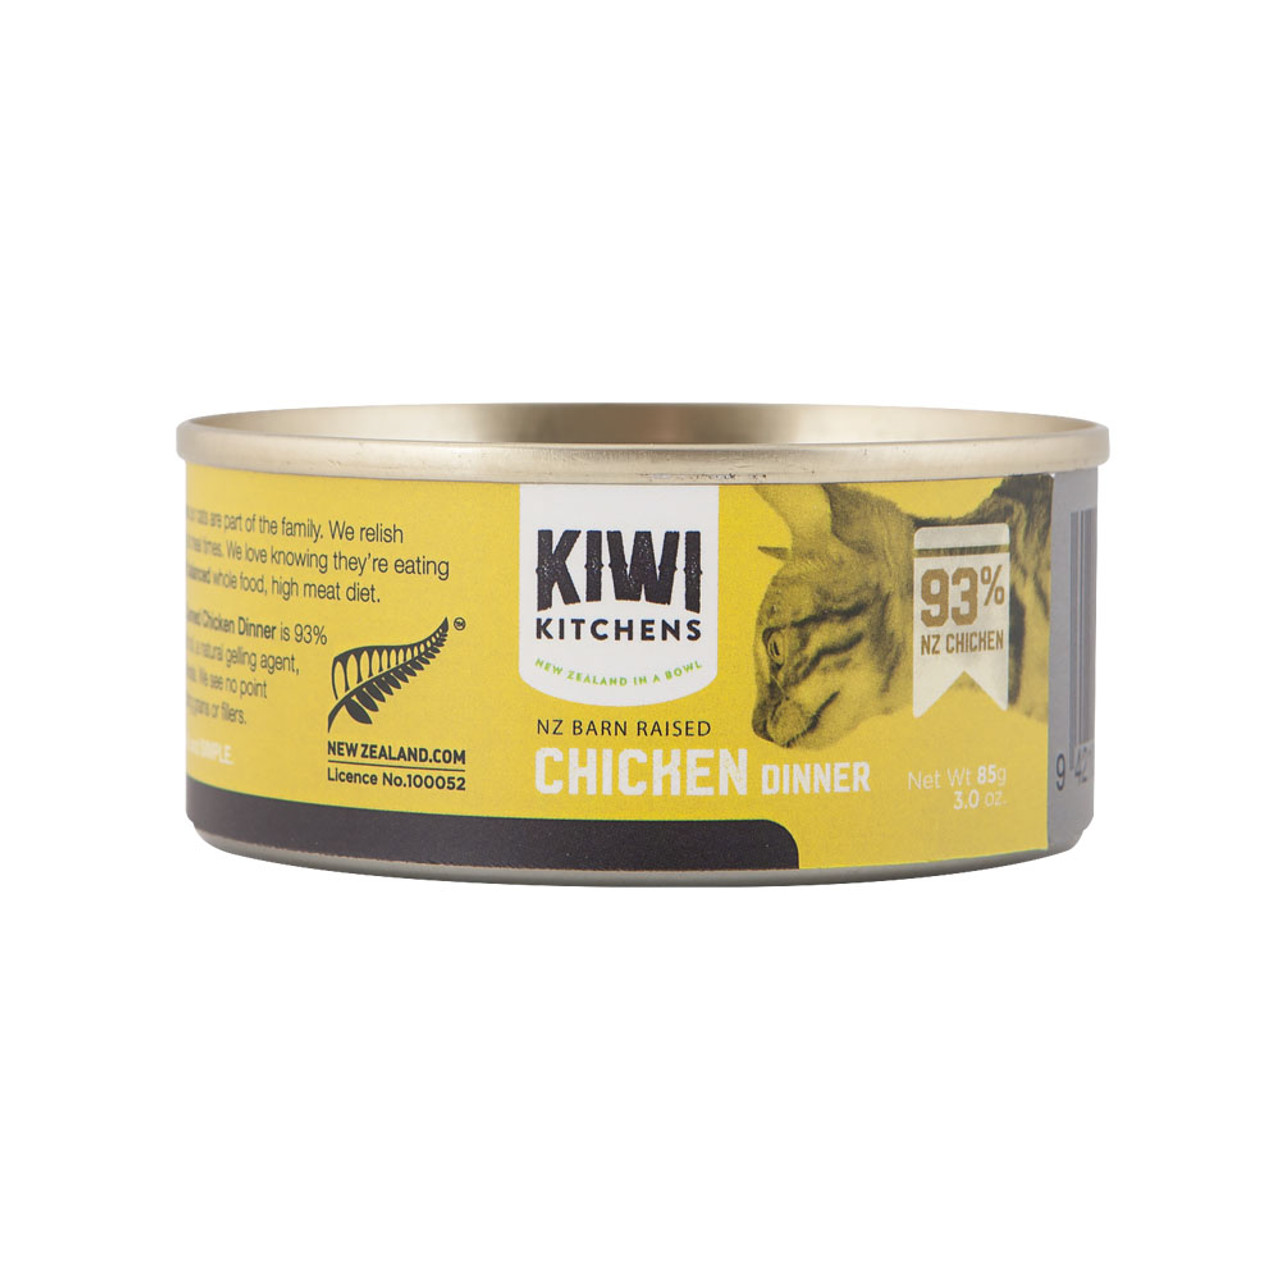 Kiwi Kitchens Chicken Dinner Canned Cat Food